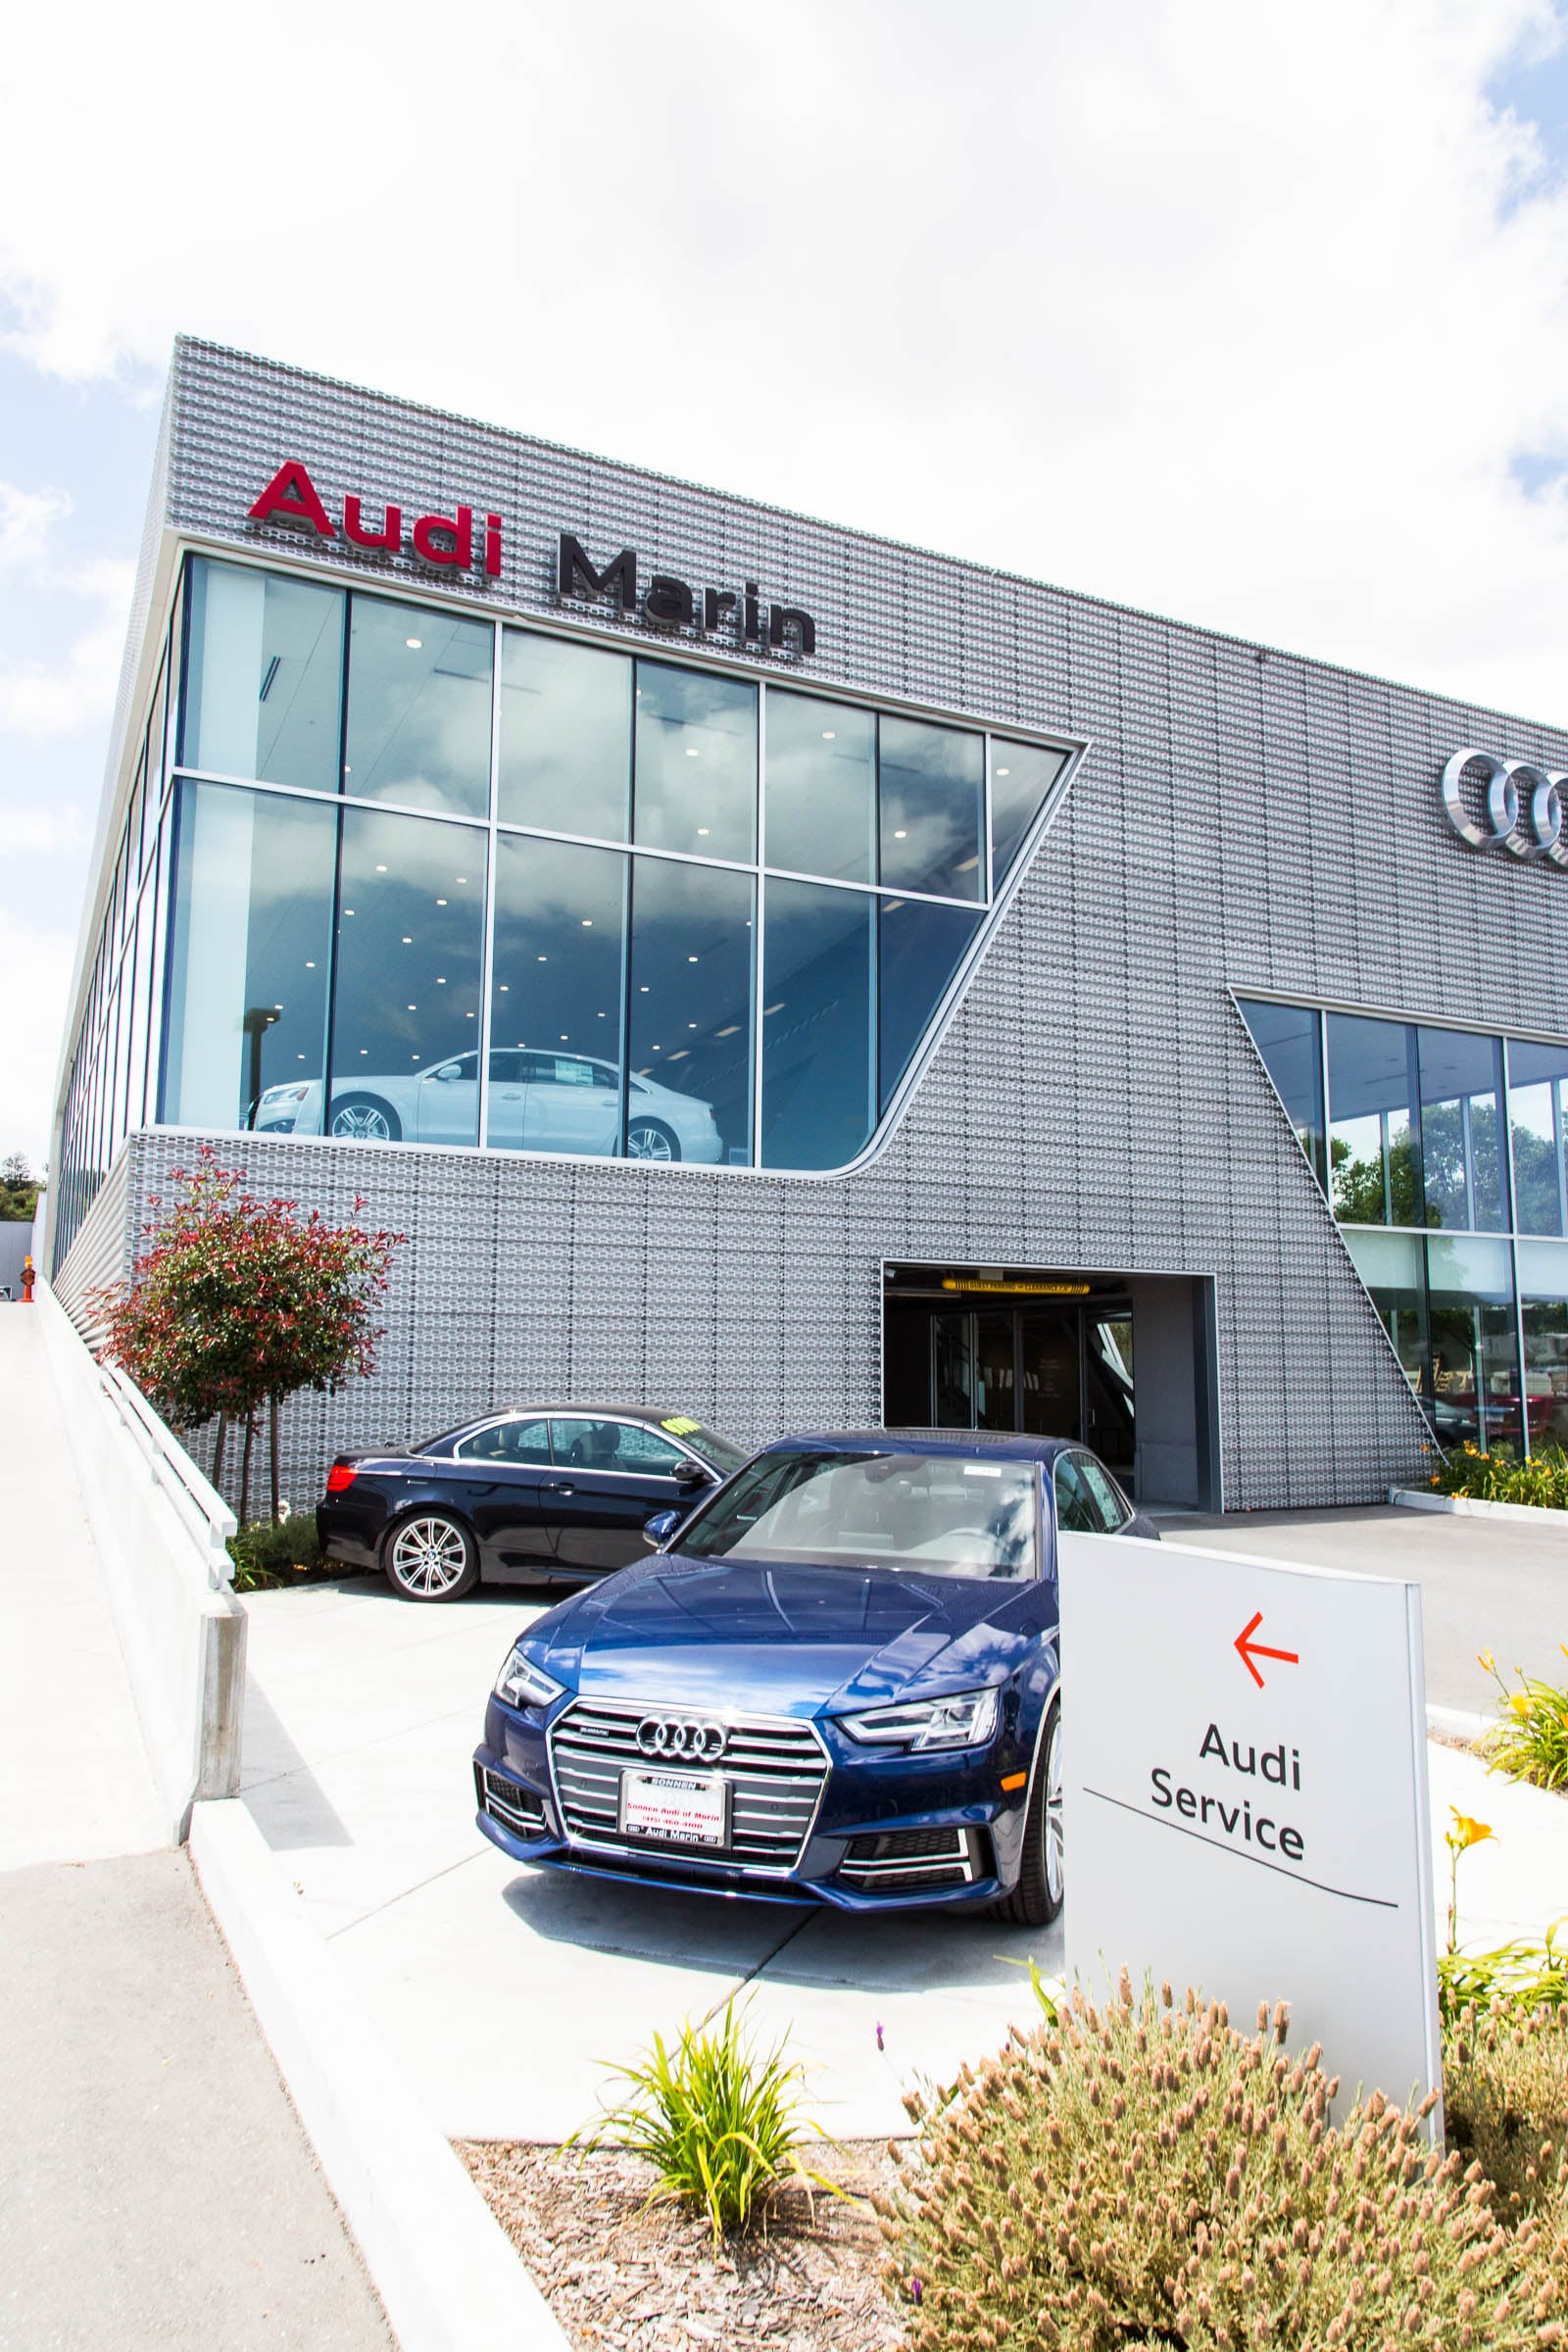 xcode car chinese for incredible dealers and audito dealer in pic concept uncategorized trends audi md